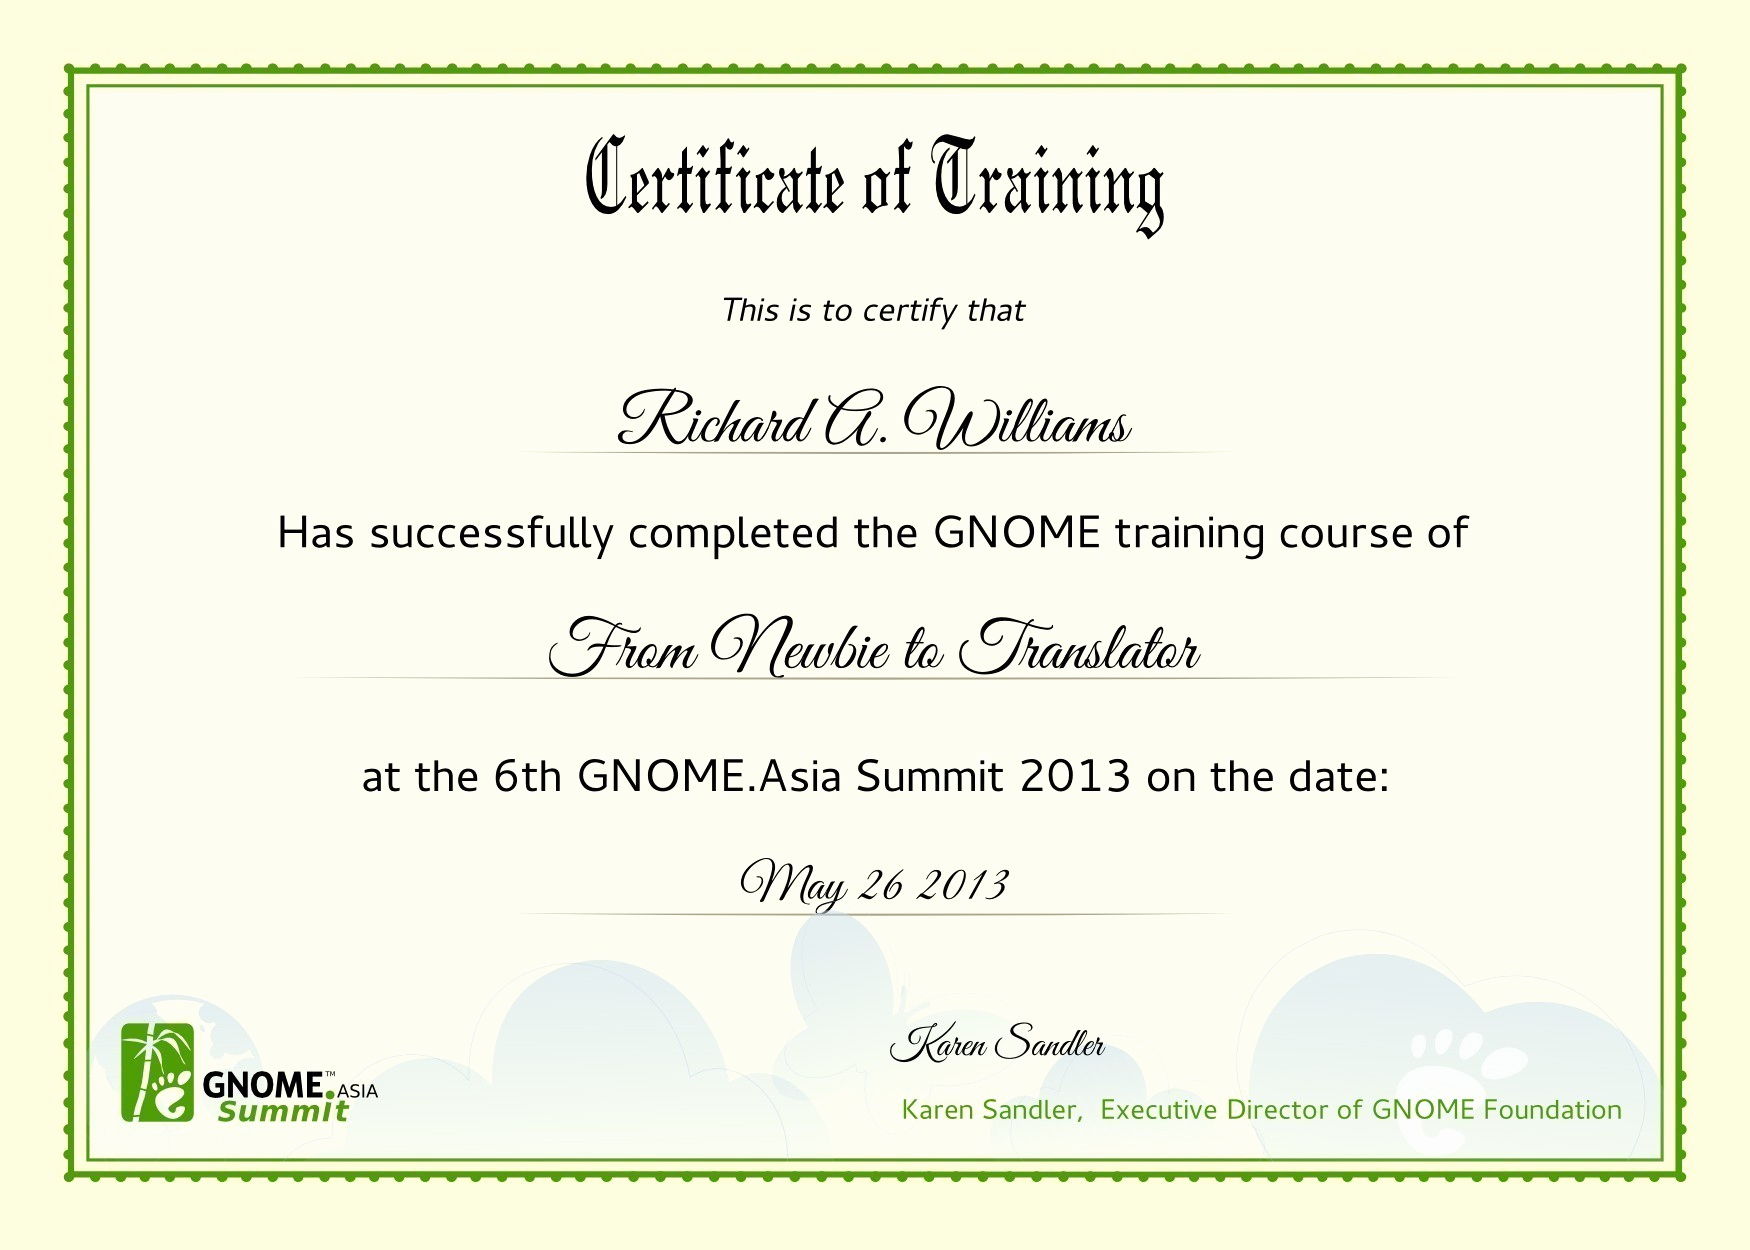 Training Certificate Template Free Download Elegant Training Certificate Template Free Download